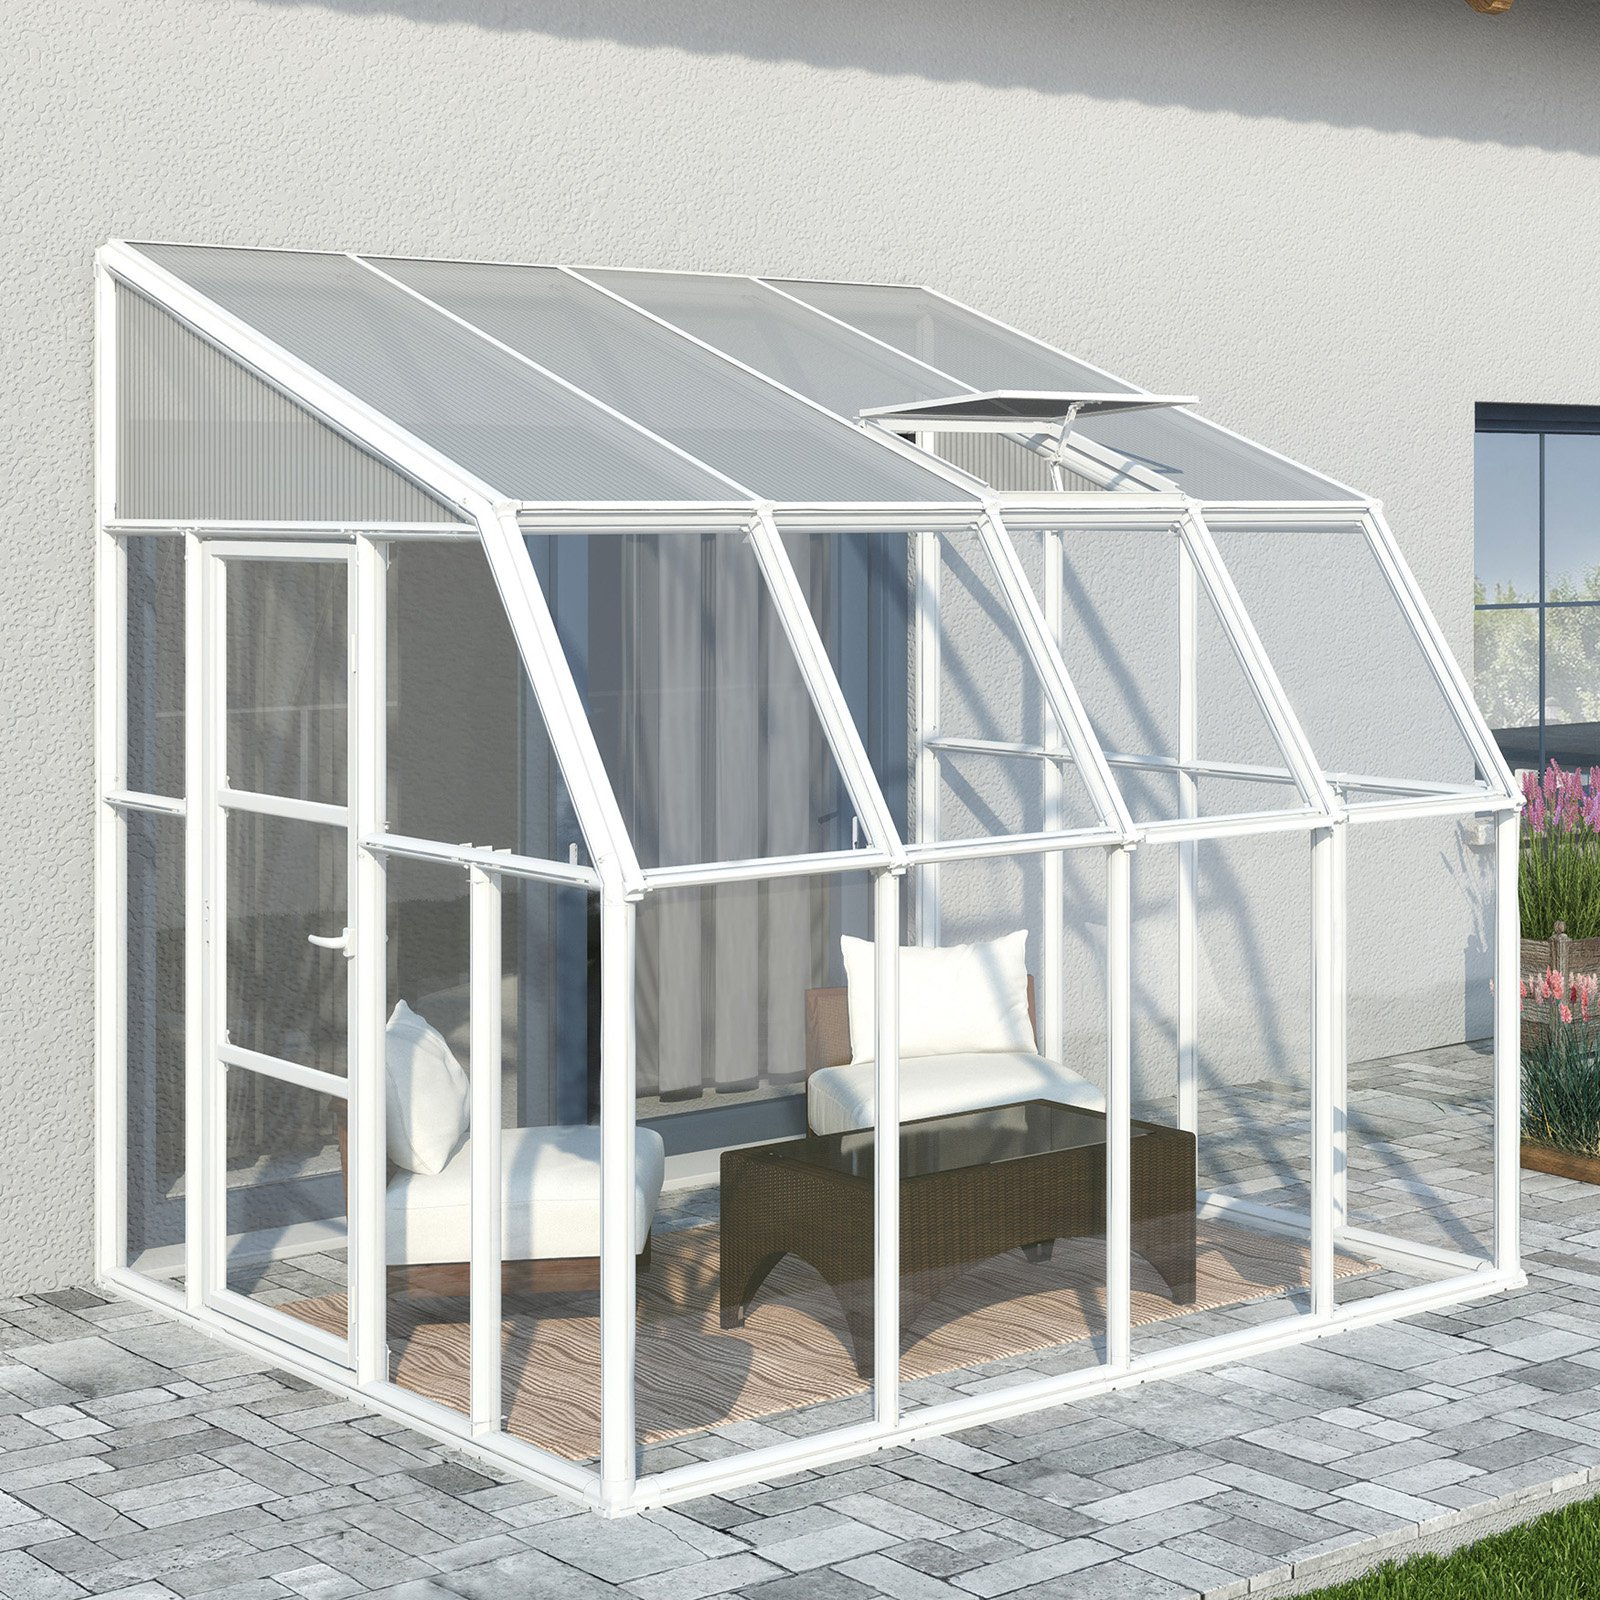 Inspirational Rion Sunroom Reviews